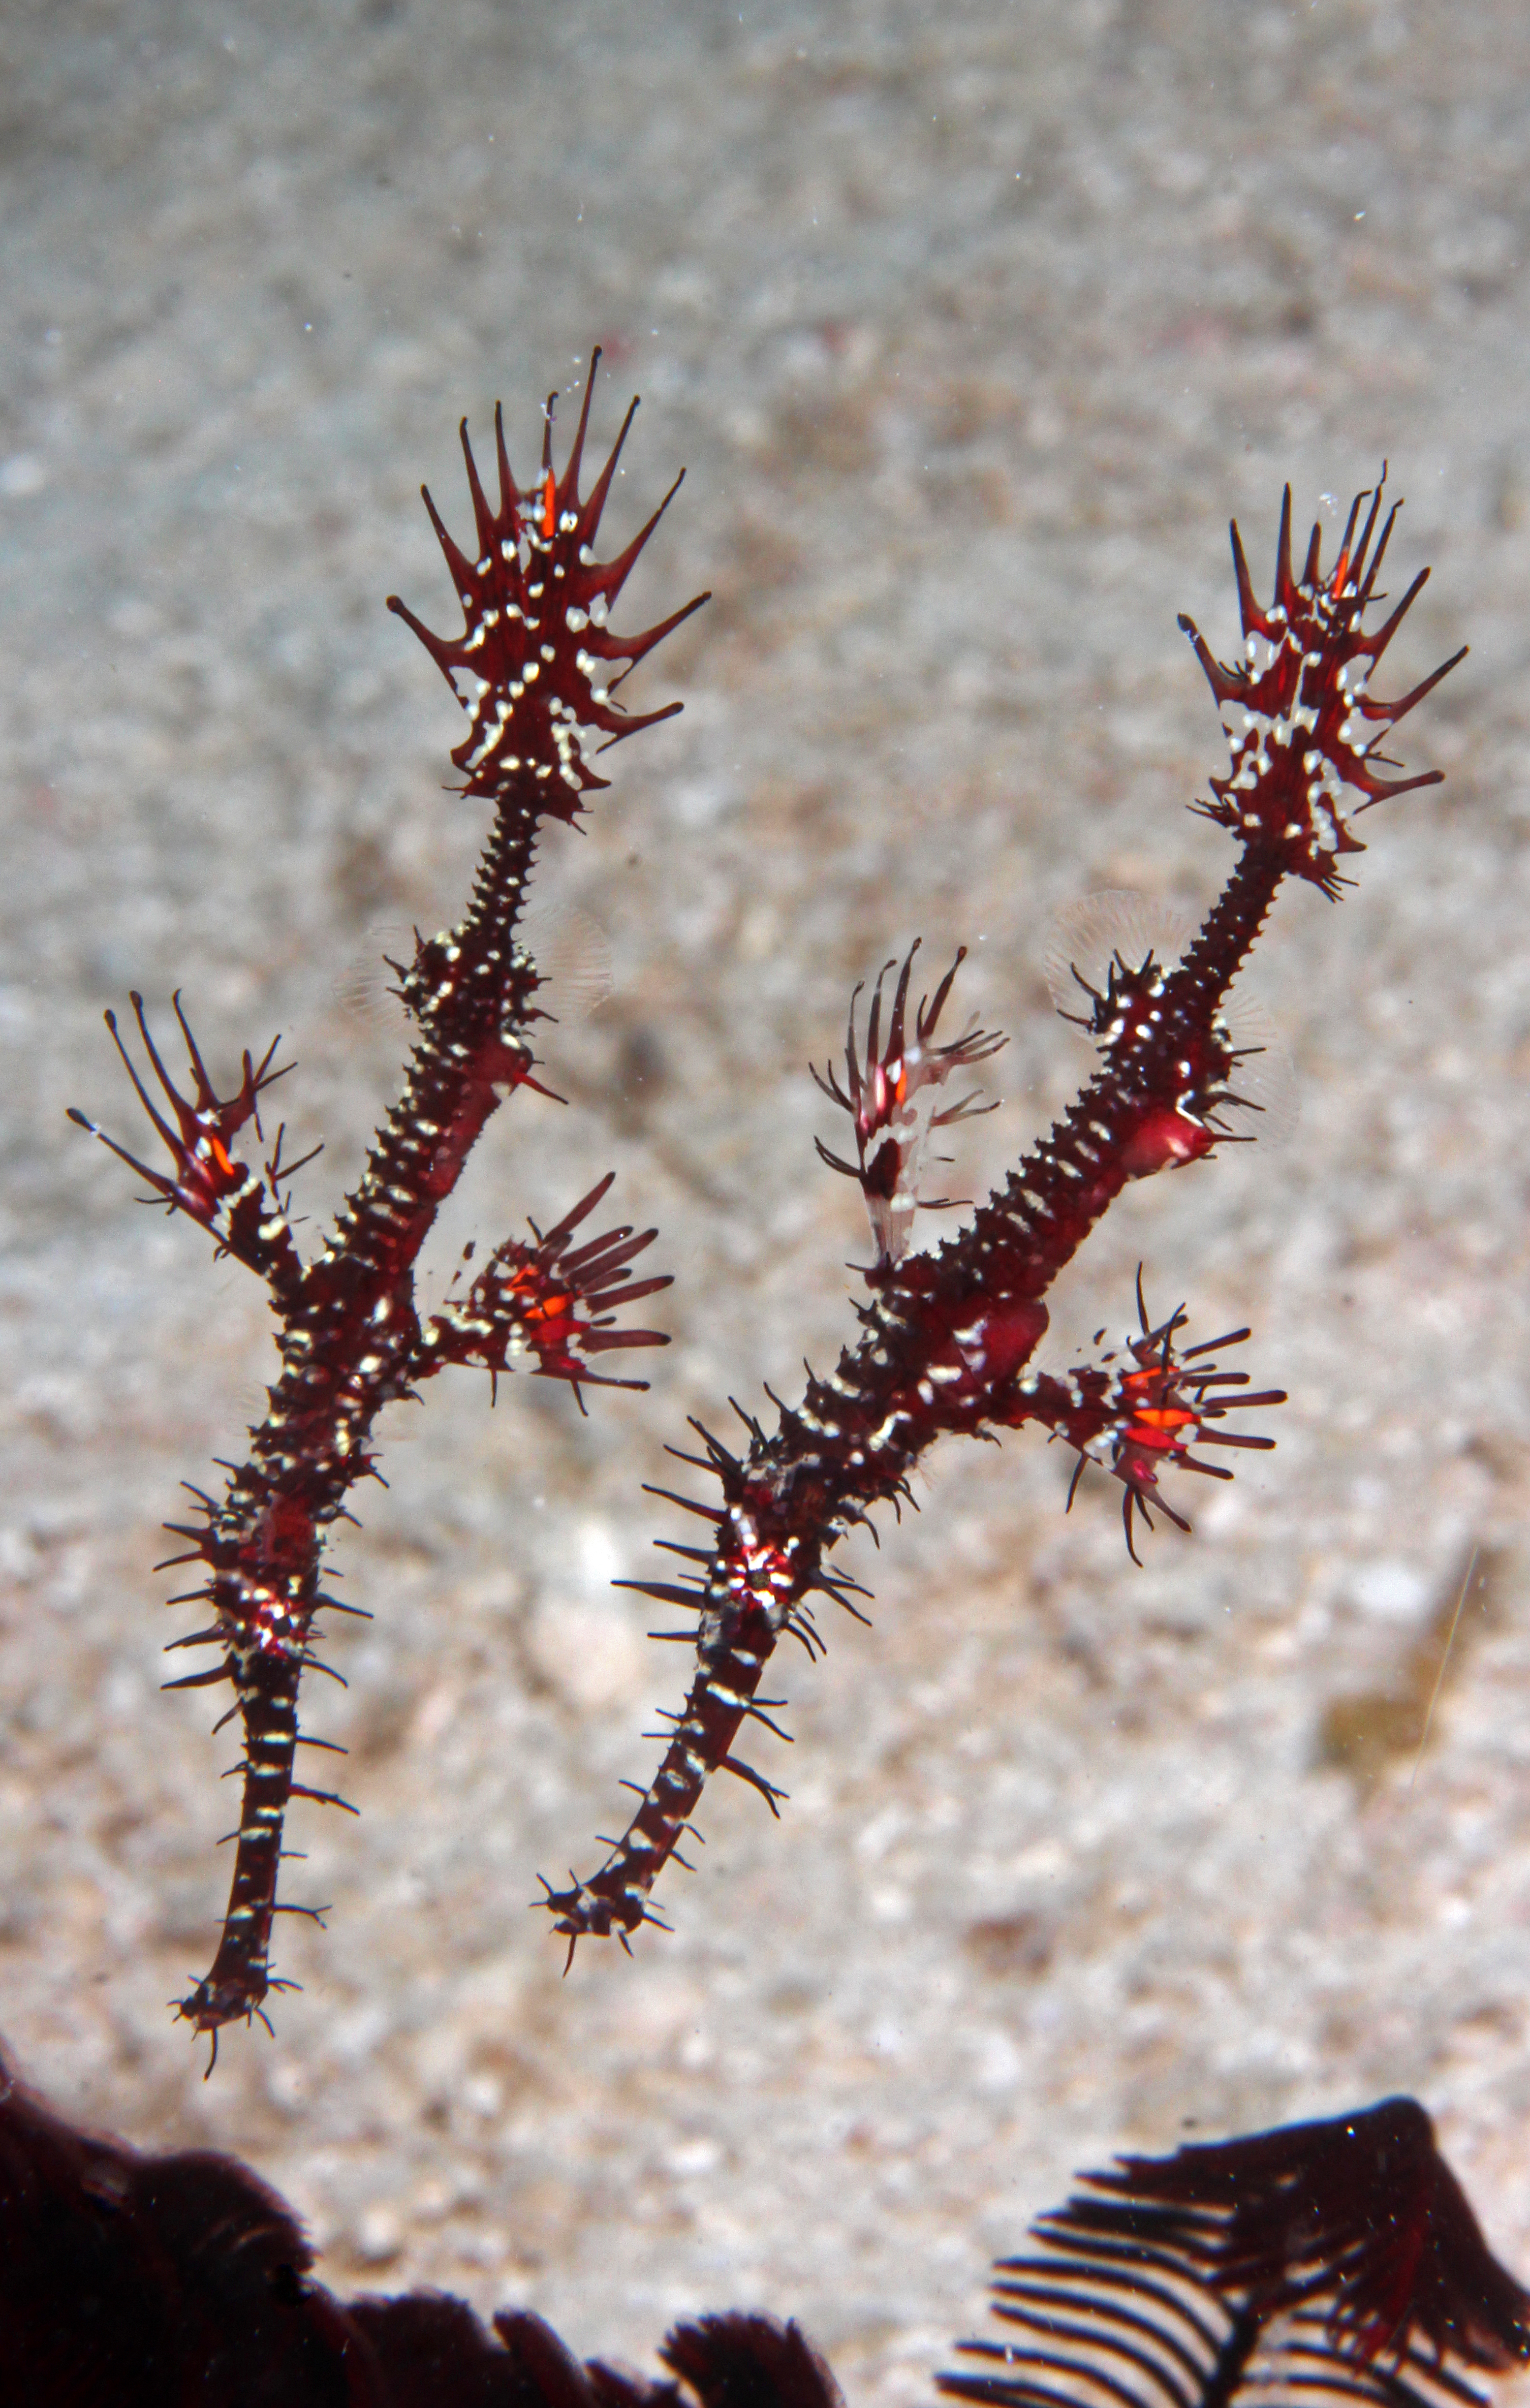 Juvenile Ornate Ghost Pipefishes